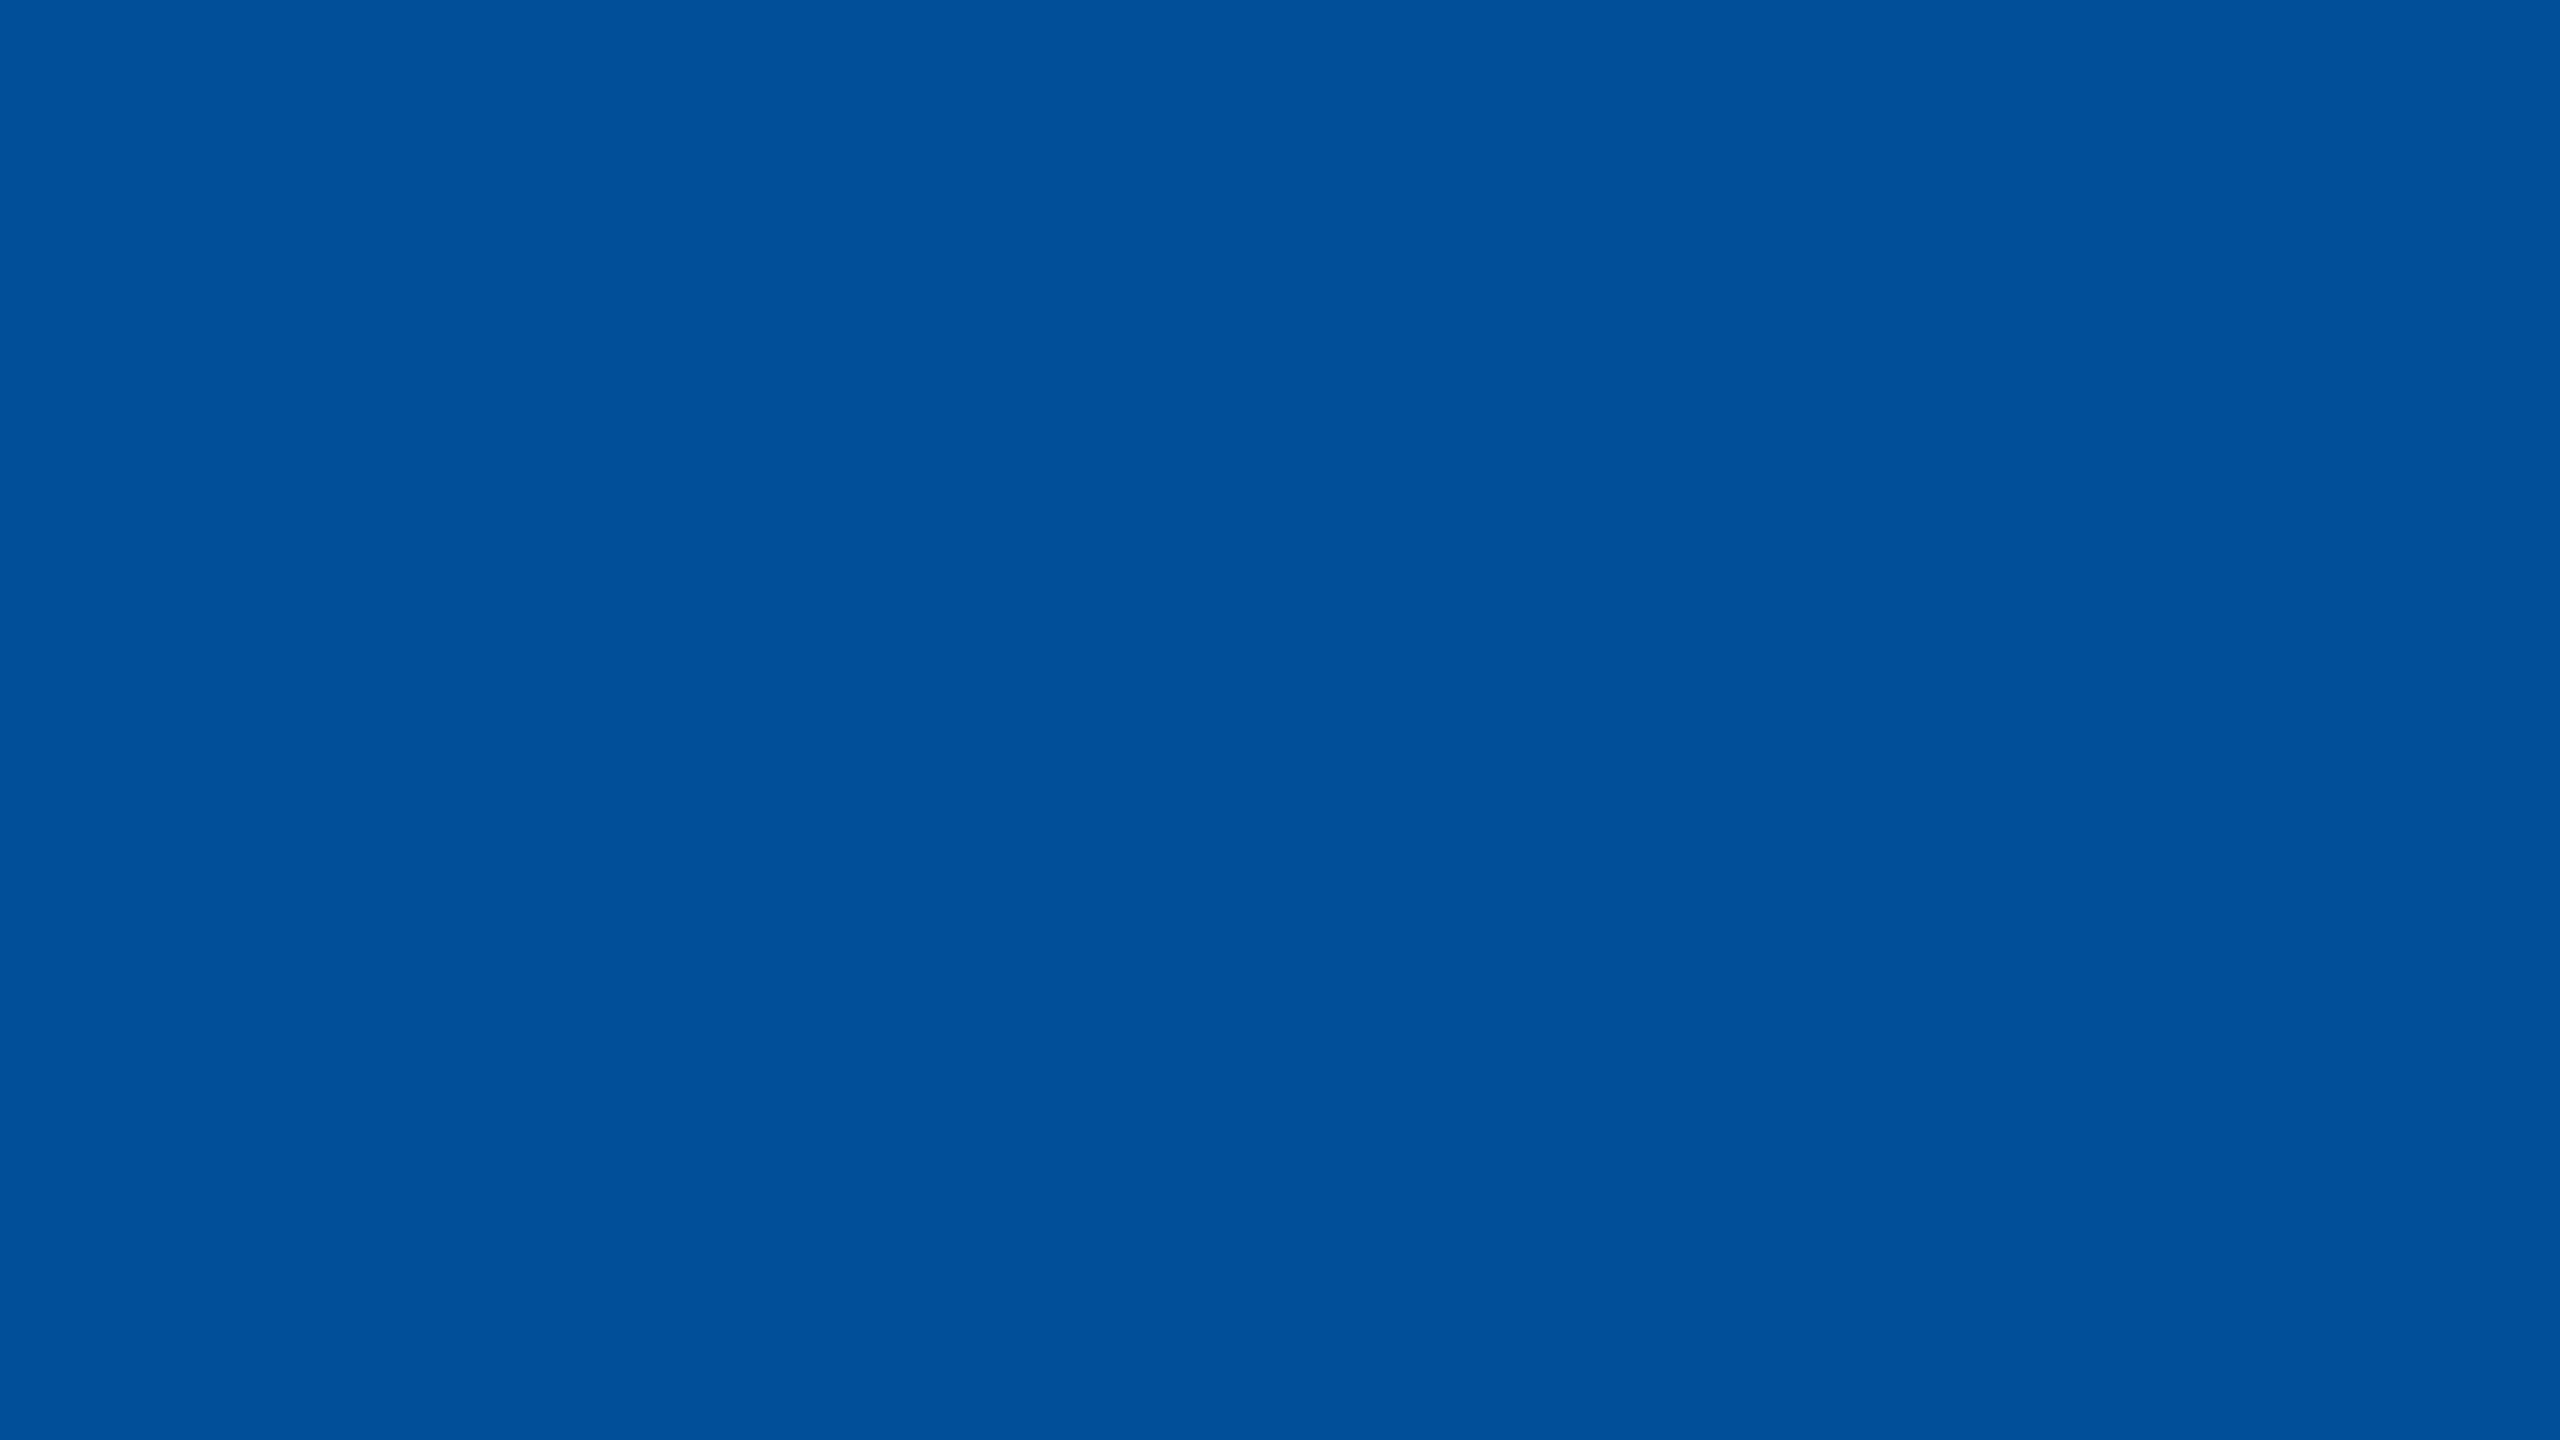 2560x1440 USAFA Blue Solid Color Background